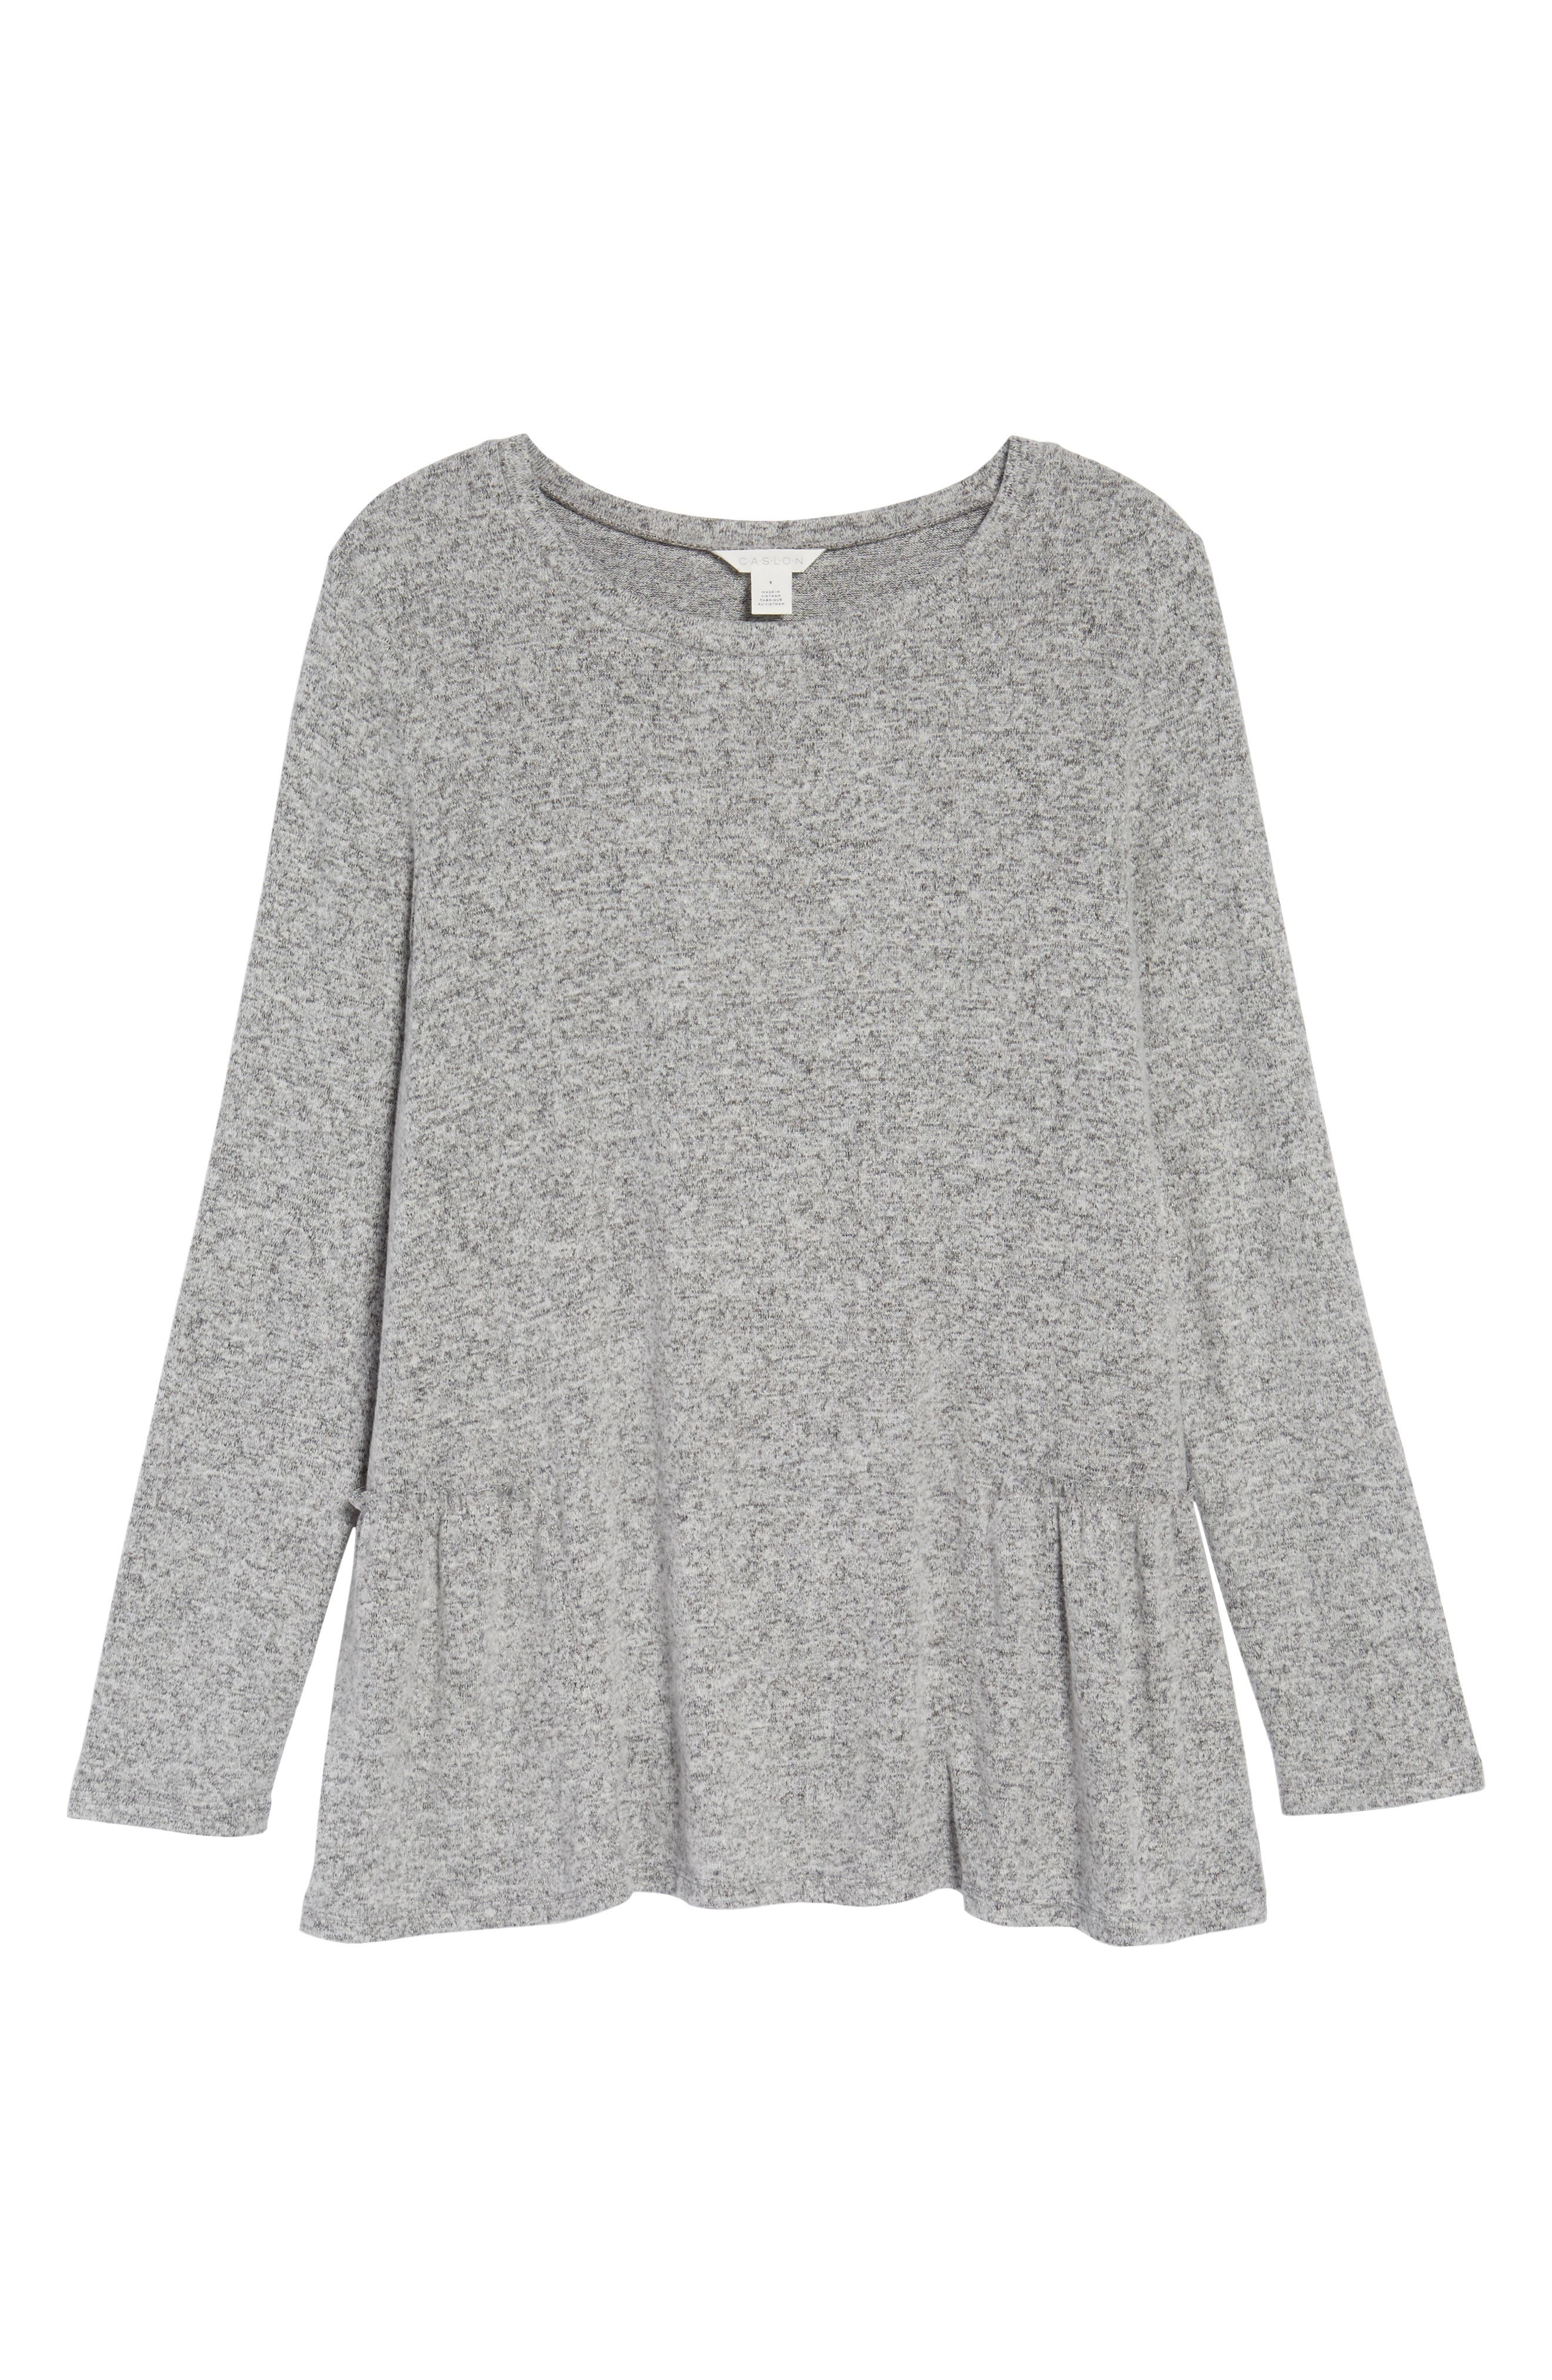 Cozy Back Peplum Top,                             Alternate thumbnail 6, color,                             Grey Heather